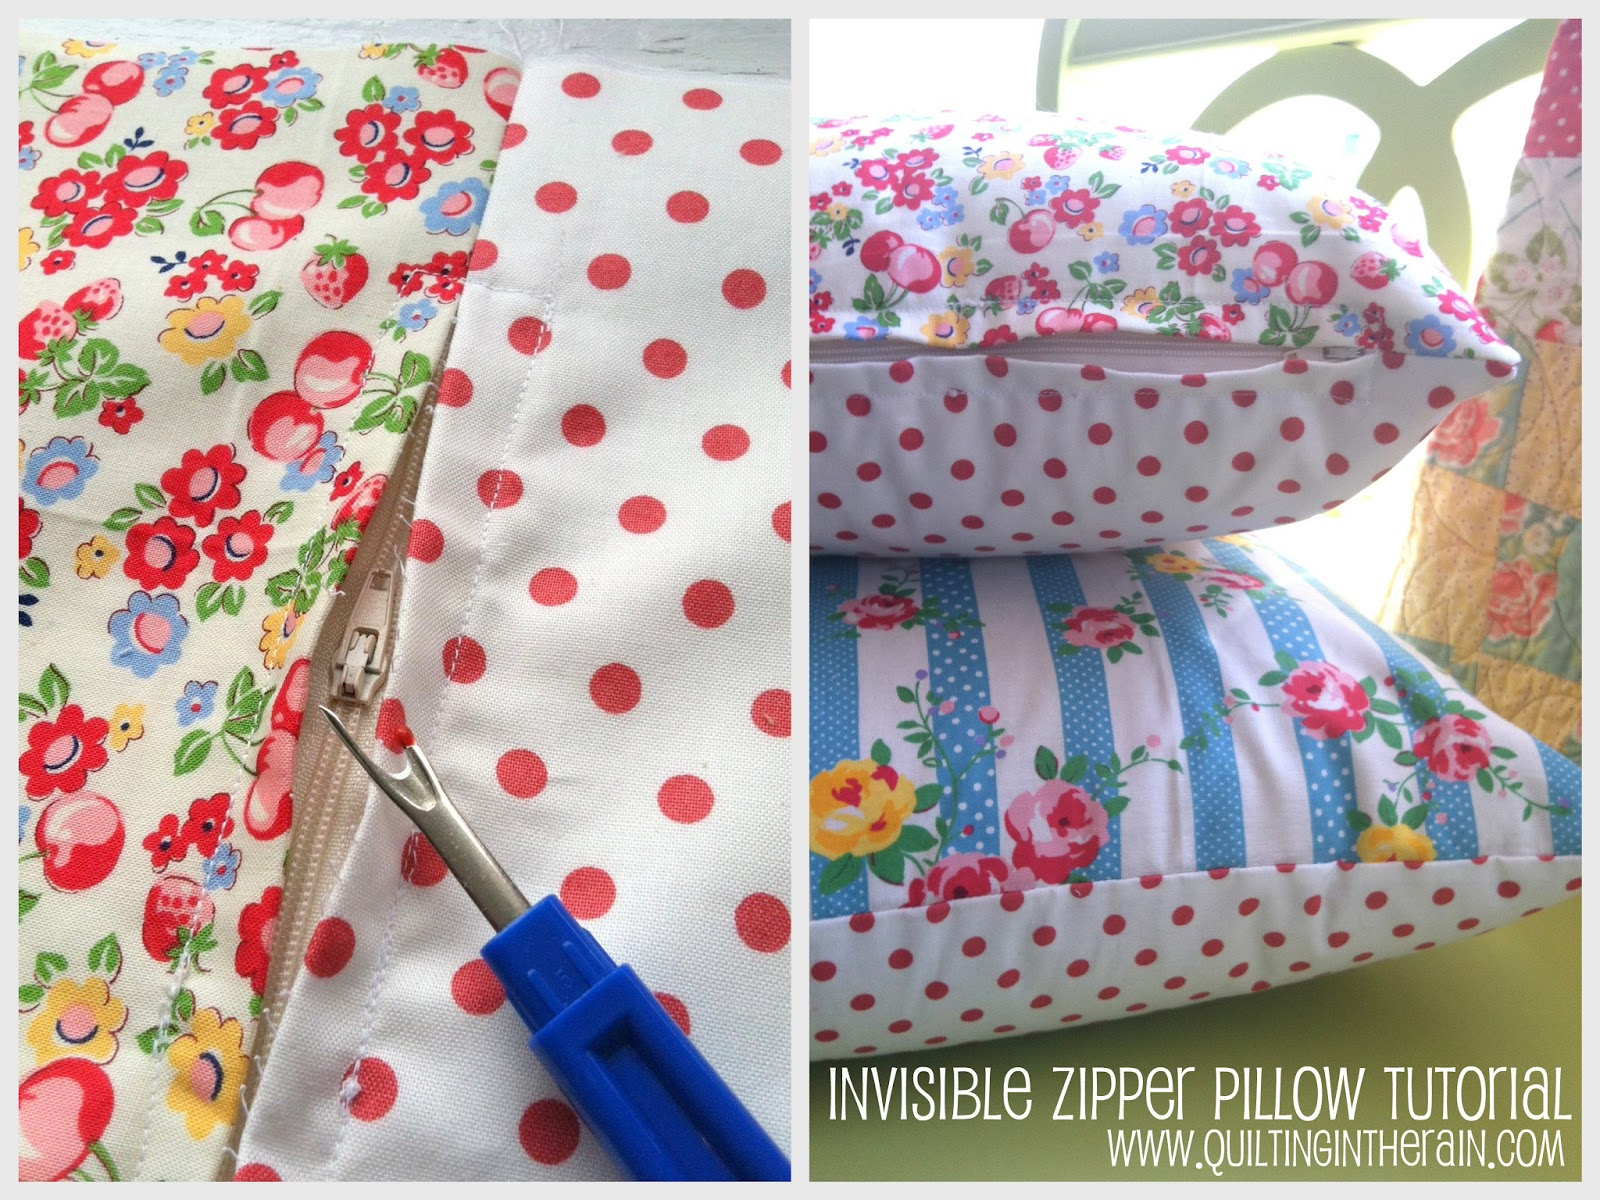 Invisible Zipper Pillow Tutorial